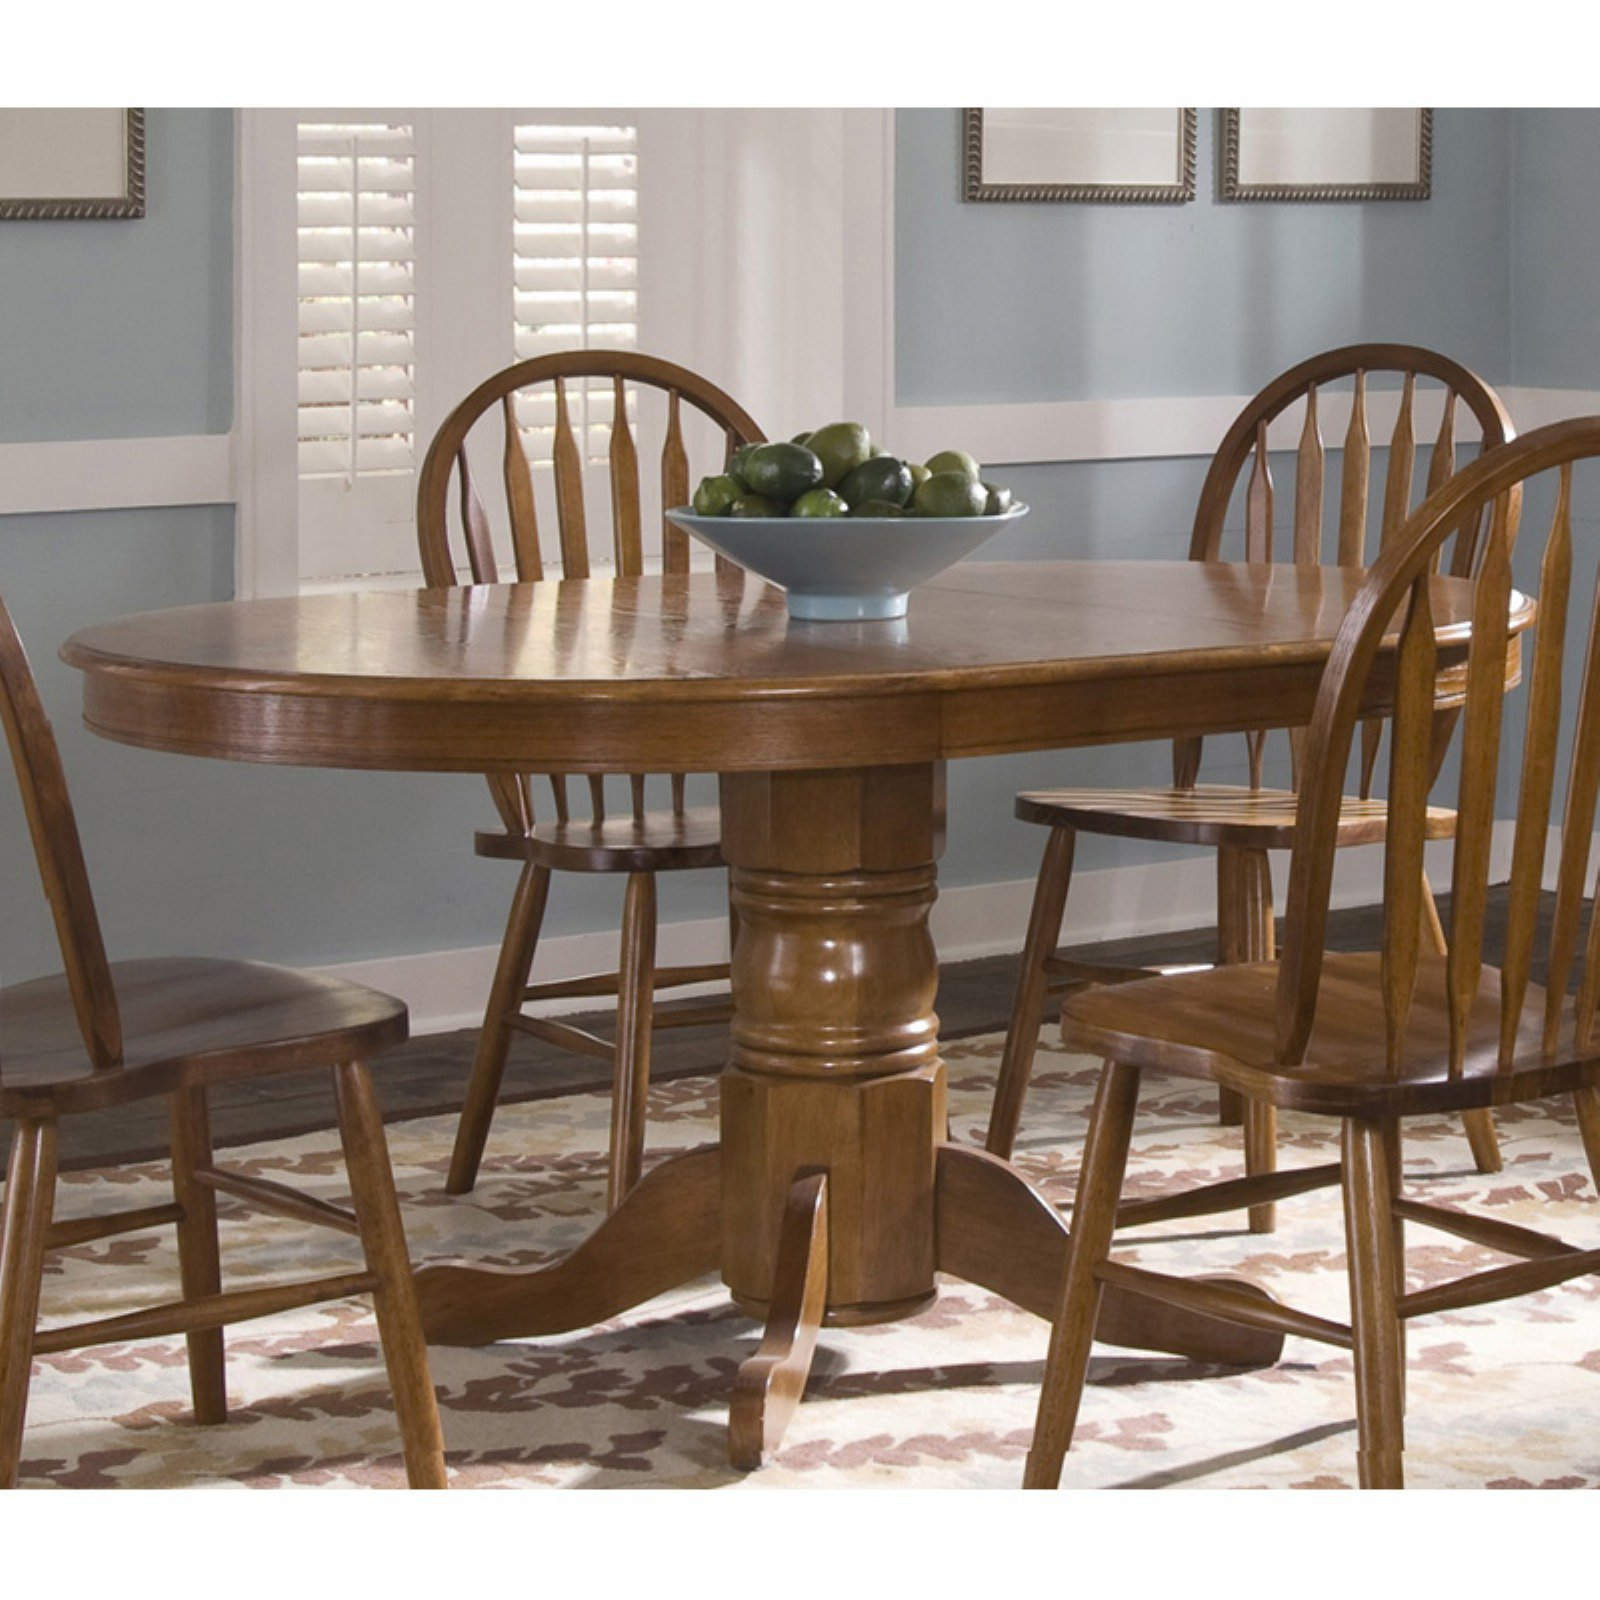 Liberty Furniture Industries Nostalgia Oval Extension Dining Table